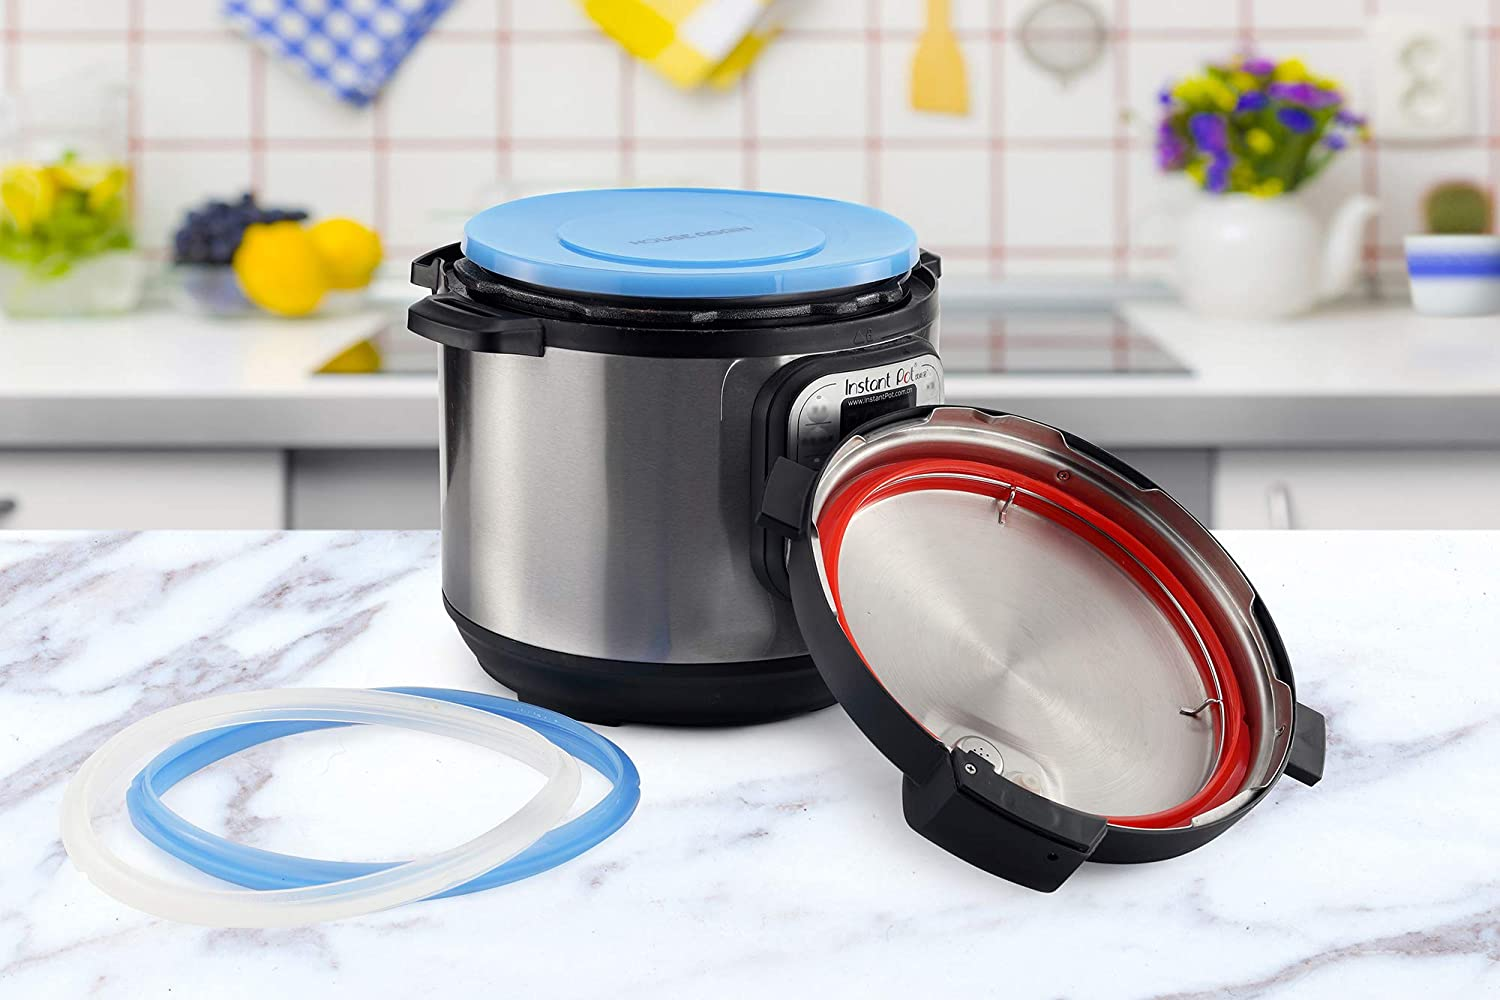 Lid Cover Fit Snugly for 6 Quart Edition Rings Easy Clean for Pressure Cooker Replacement 2 Pack Rings Sweet and Savoury Silicone Ring and Silicone Lid for Pressure Cooker Red//Blue